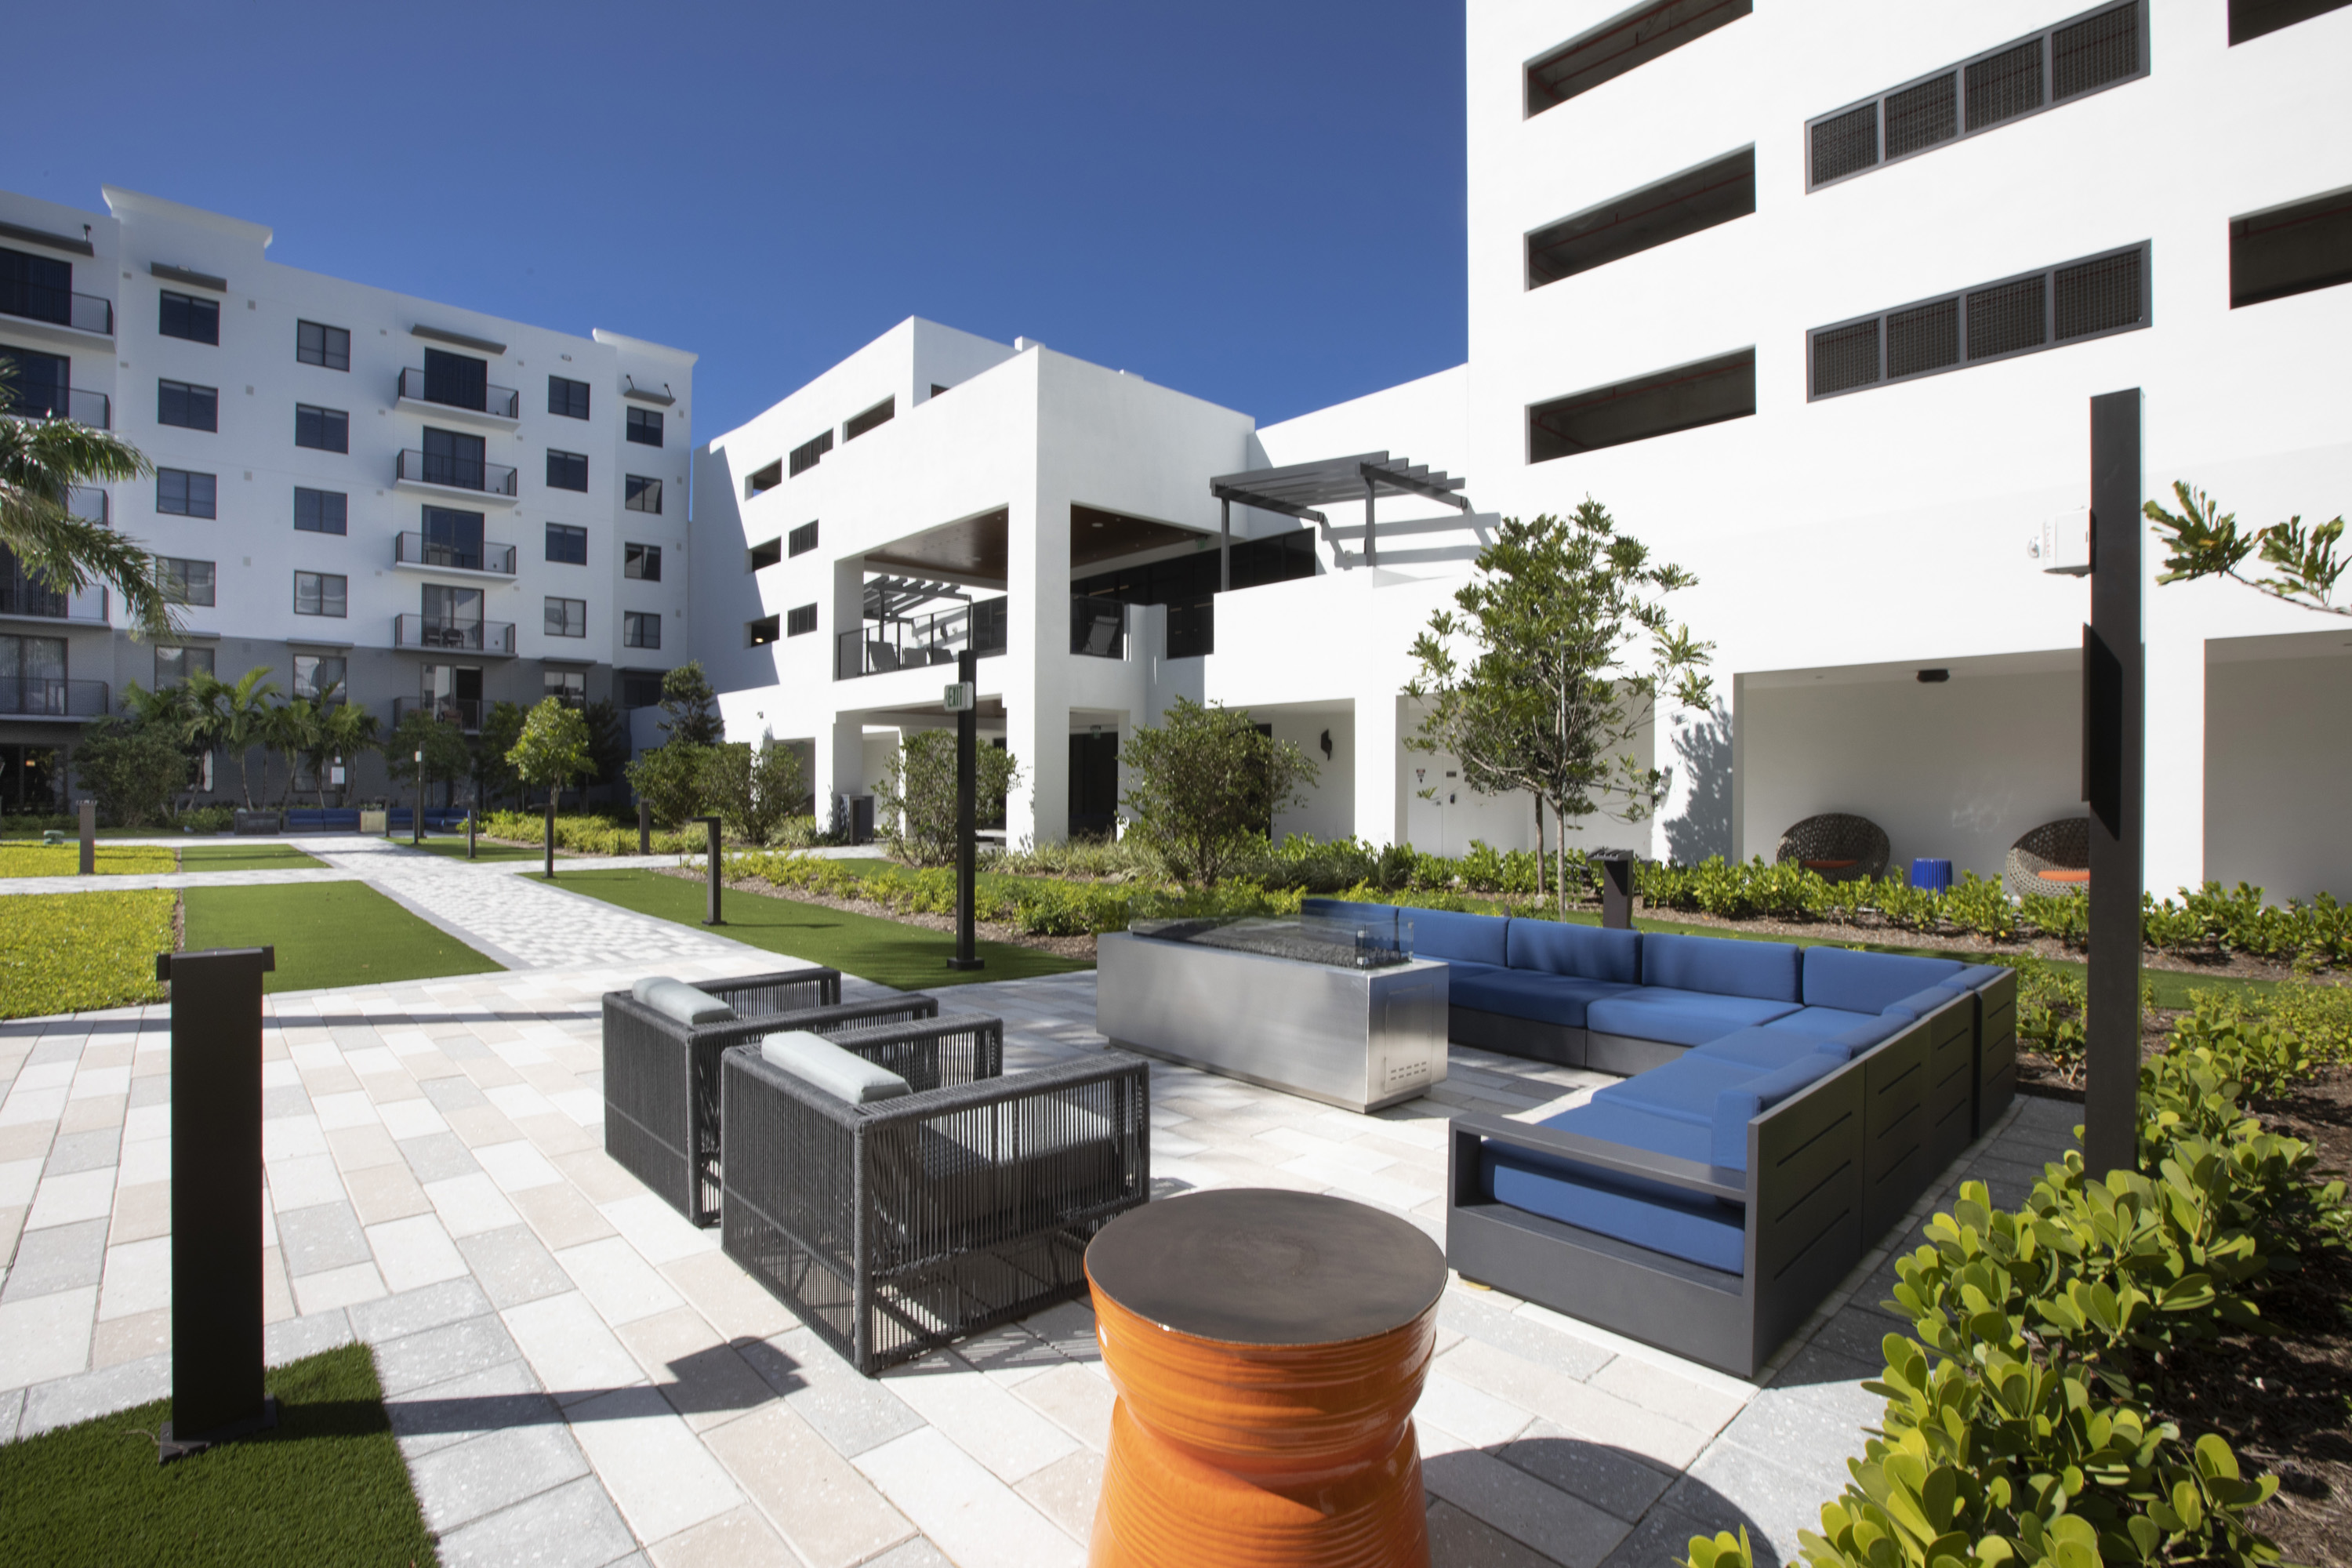 courtyard outdoor lounge area